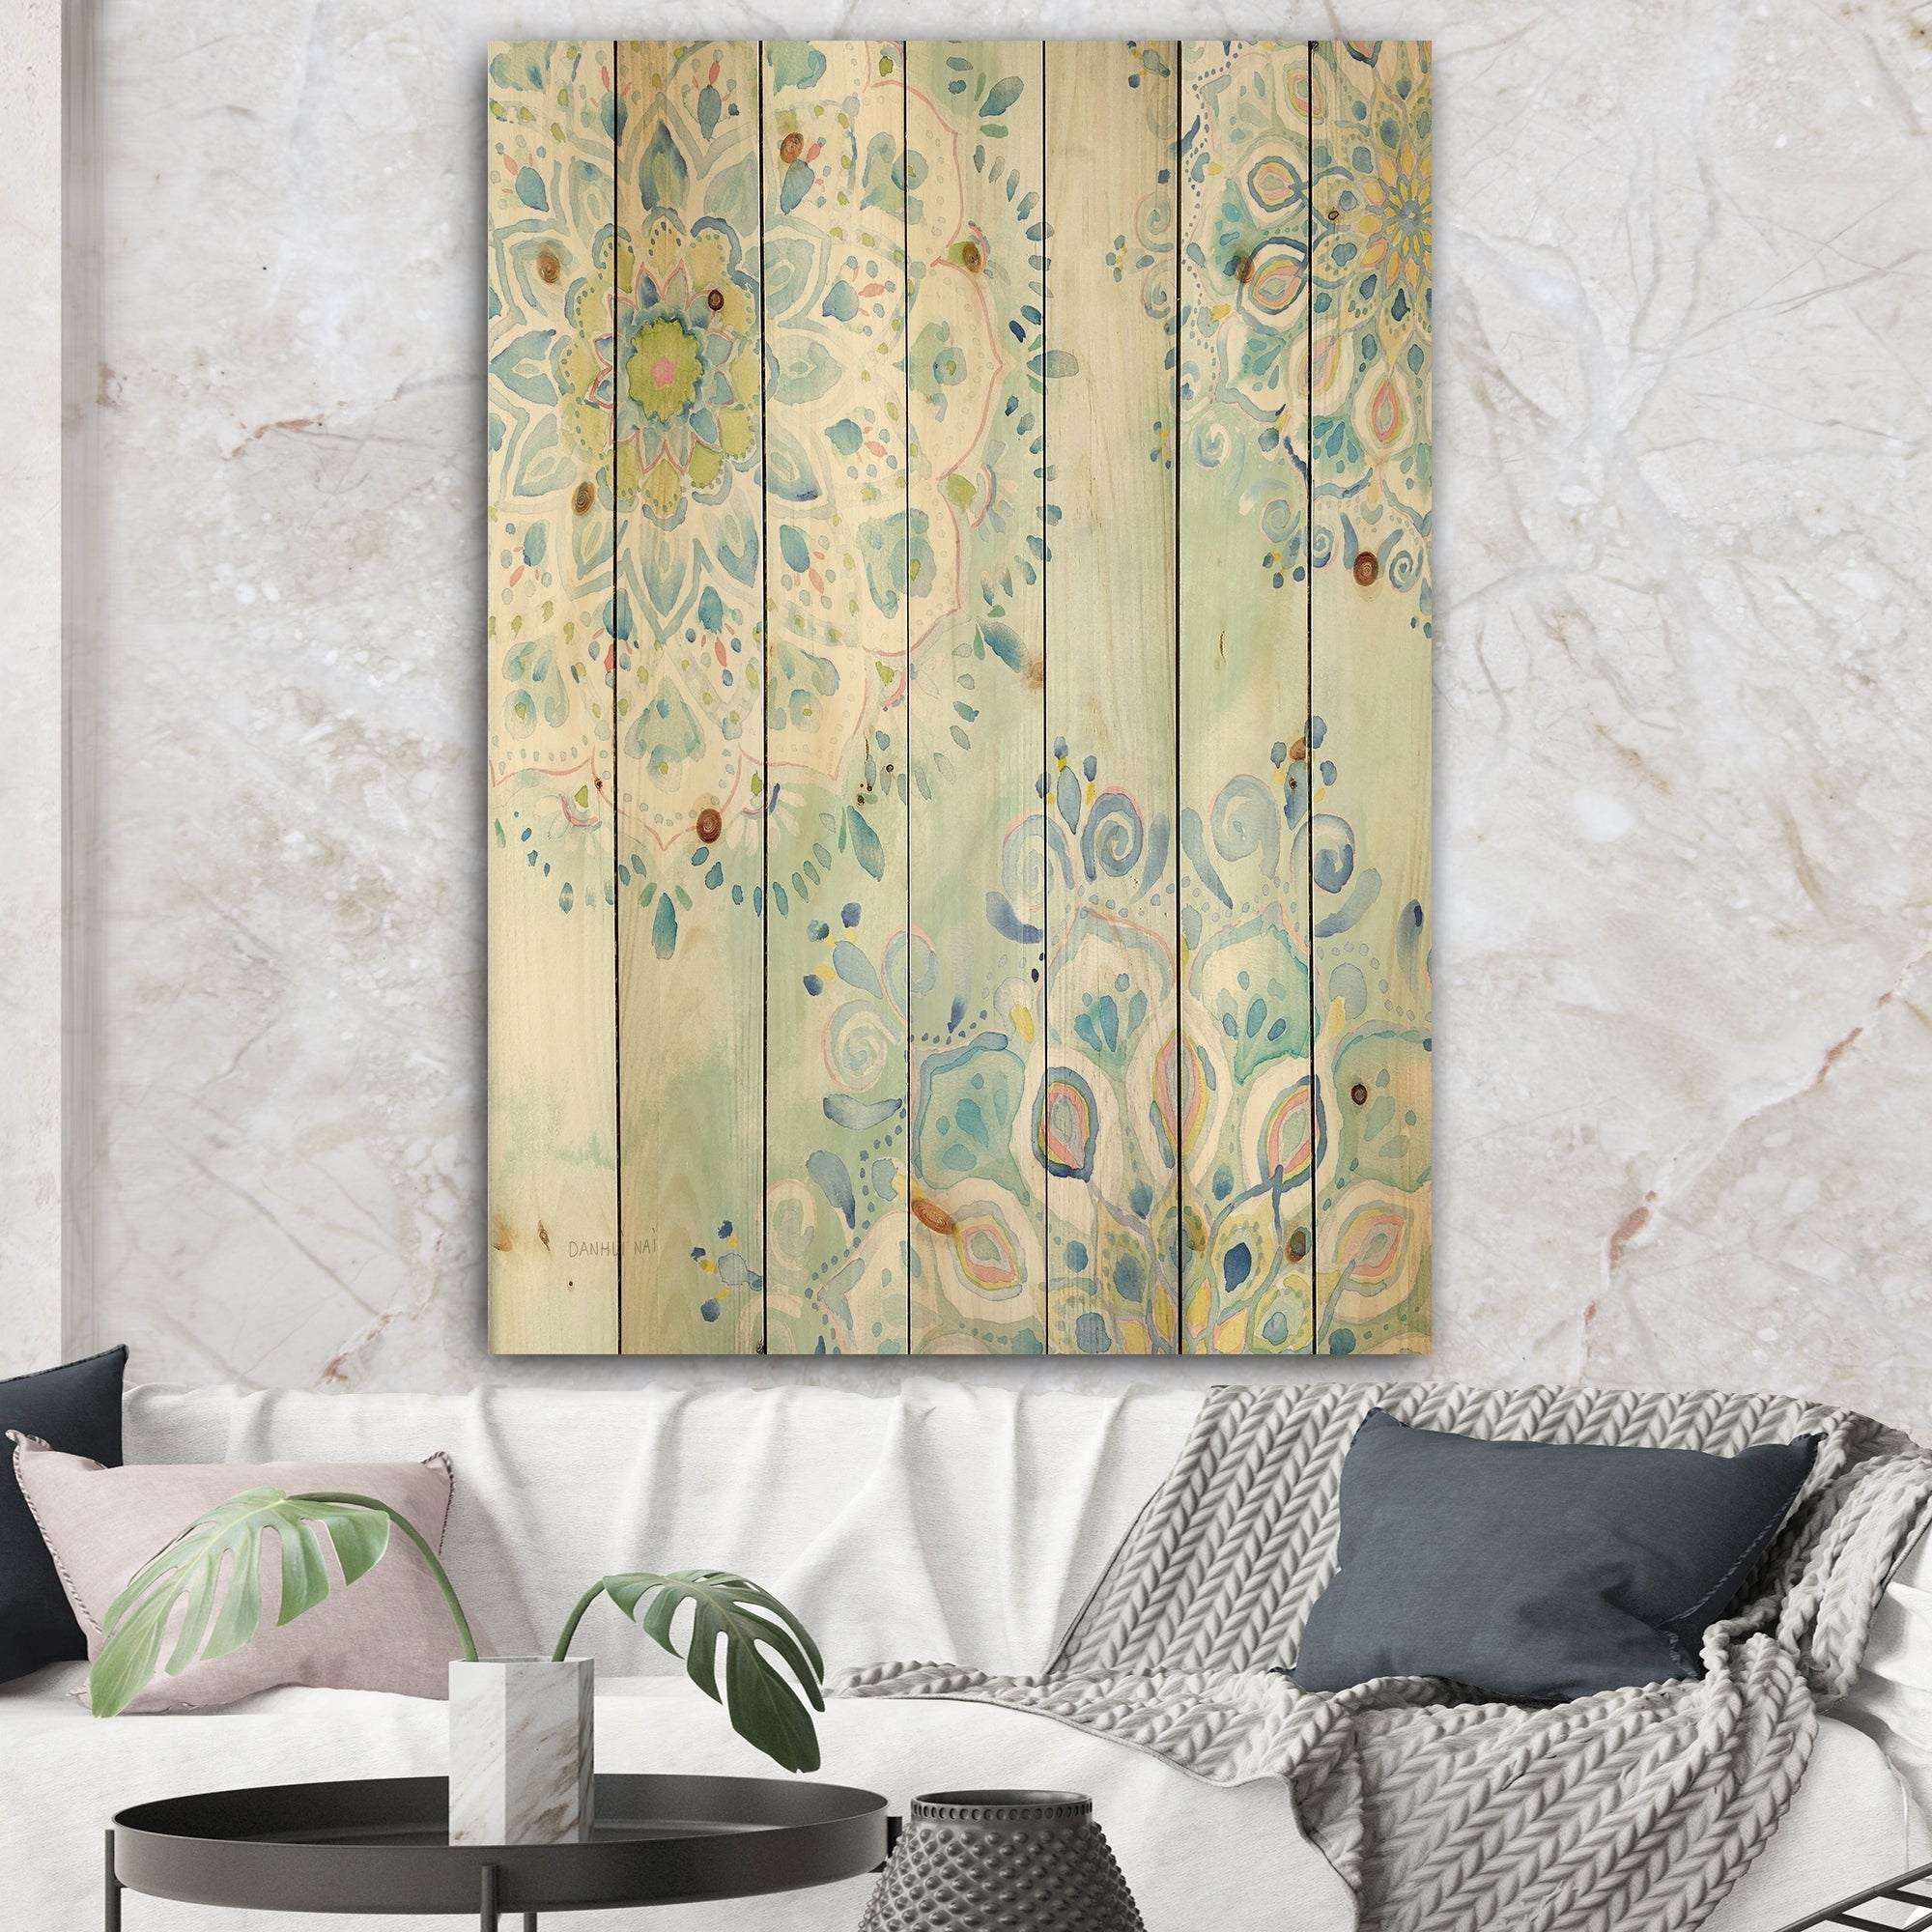 Floral Wood Wall Art | Find Great Art Gallery Deals Shopping Pertaining To 3 Piece Magnolia Brown Panel Wall Decor Sets (View 19 of 30)